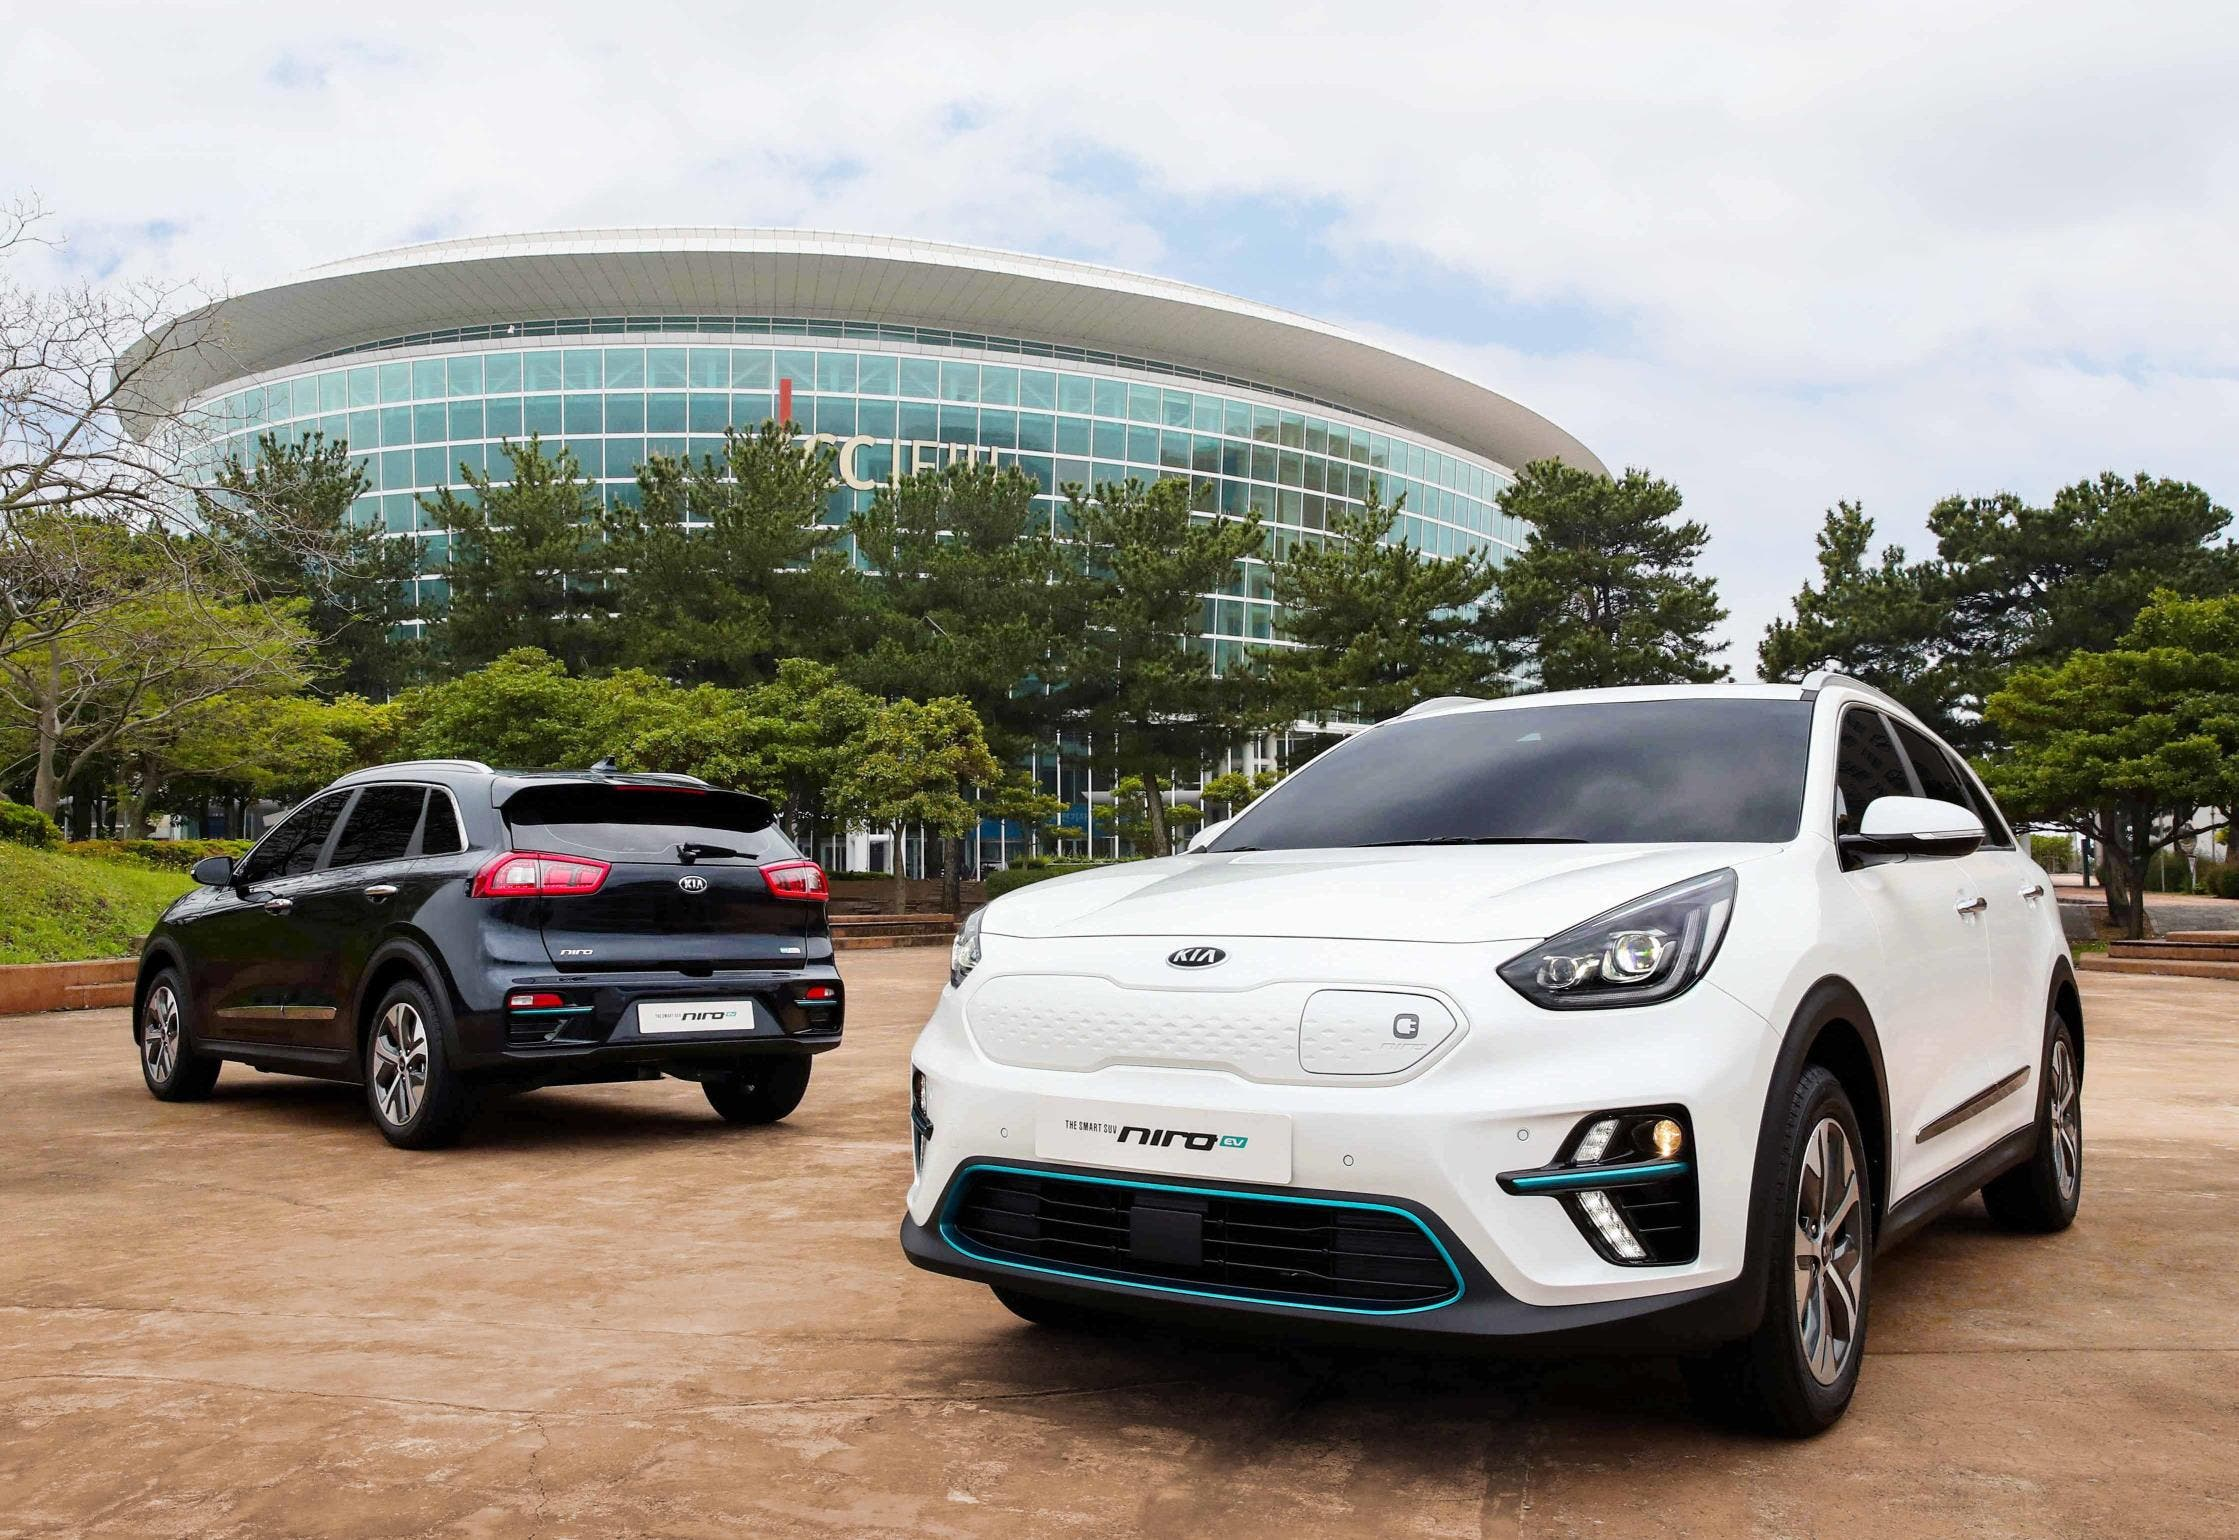 At The Ces 2018 Show Kia Showed Off A Battery Ed Concept Of Niro Which Is Already Available As Hybrid Or Plug In